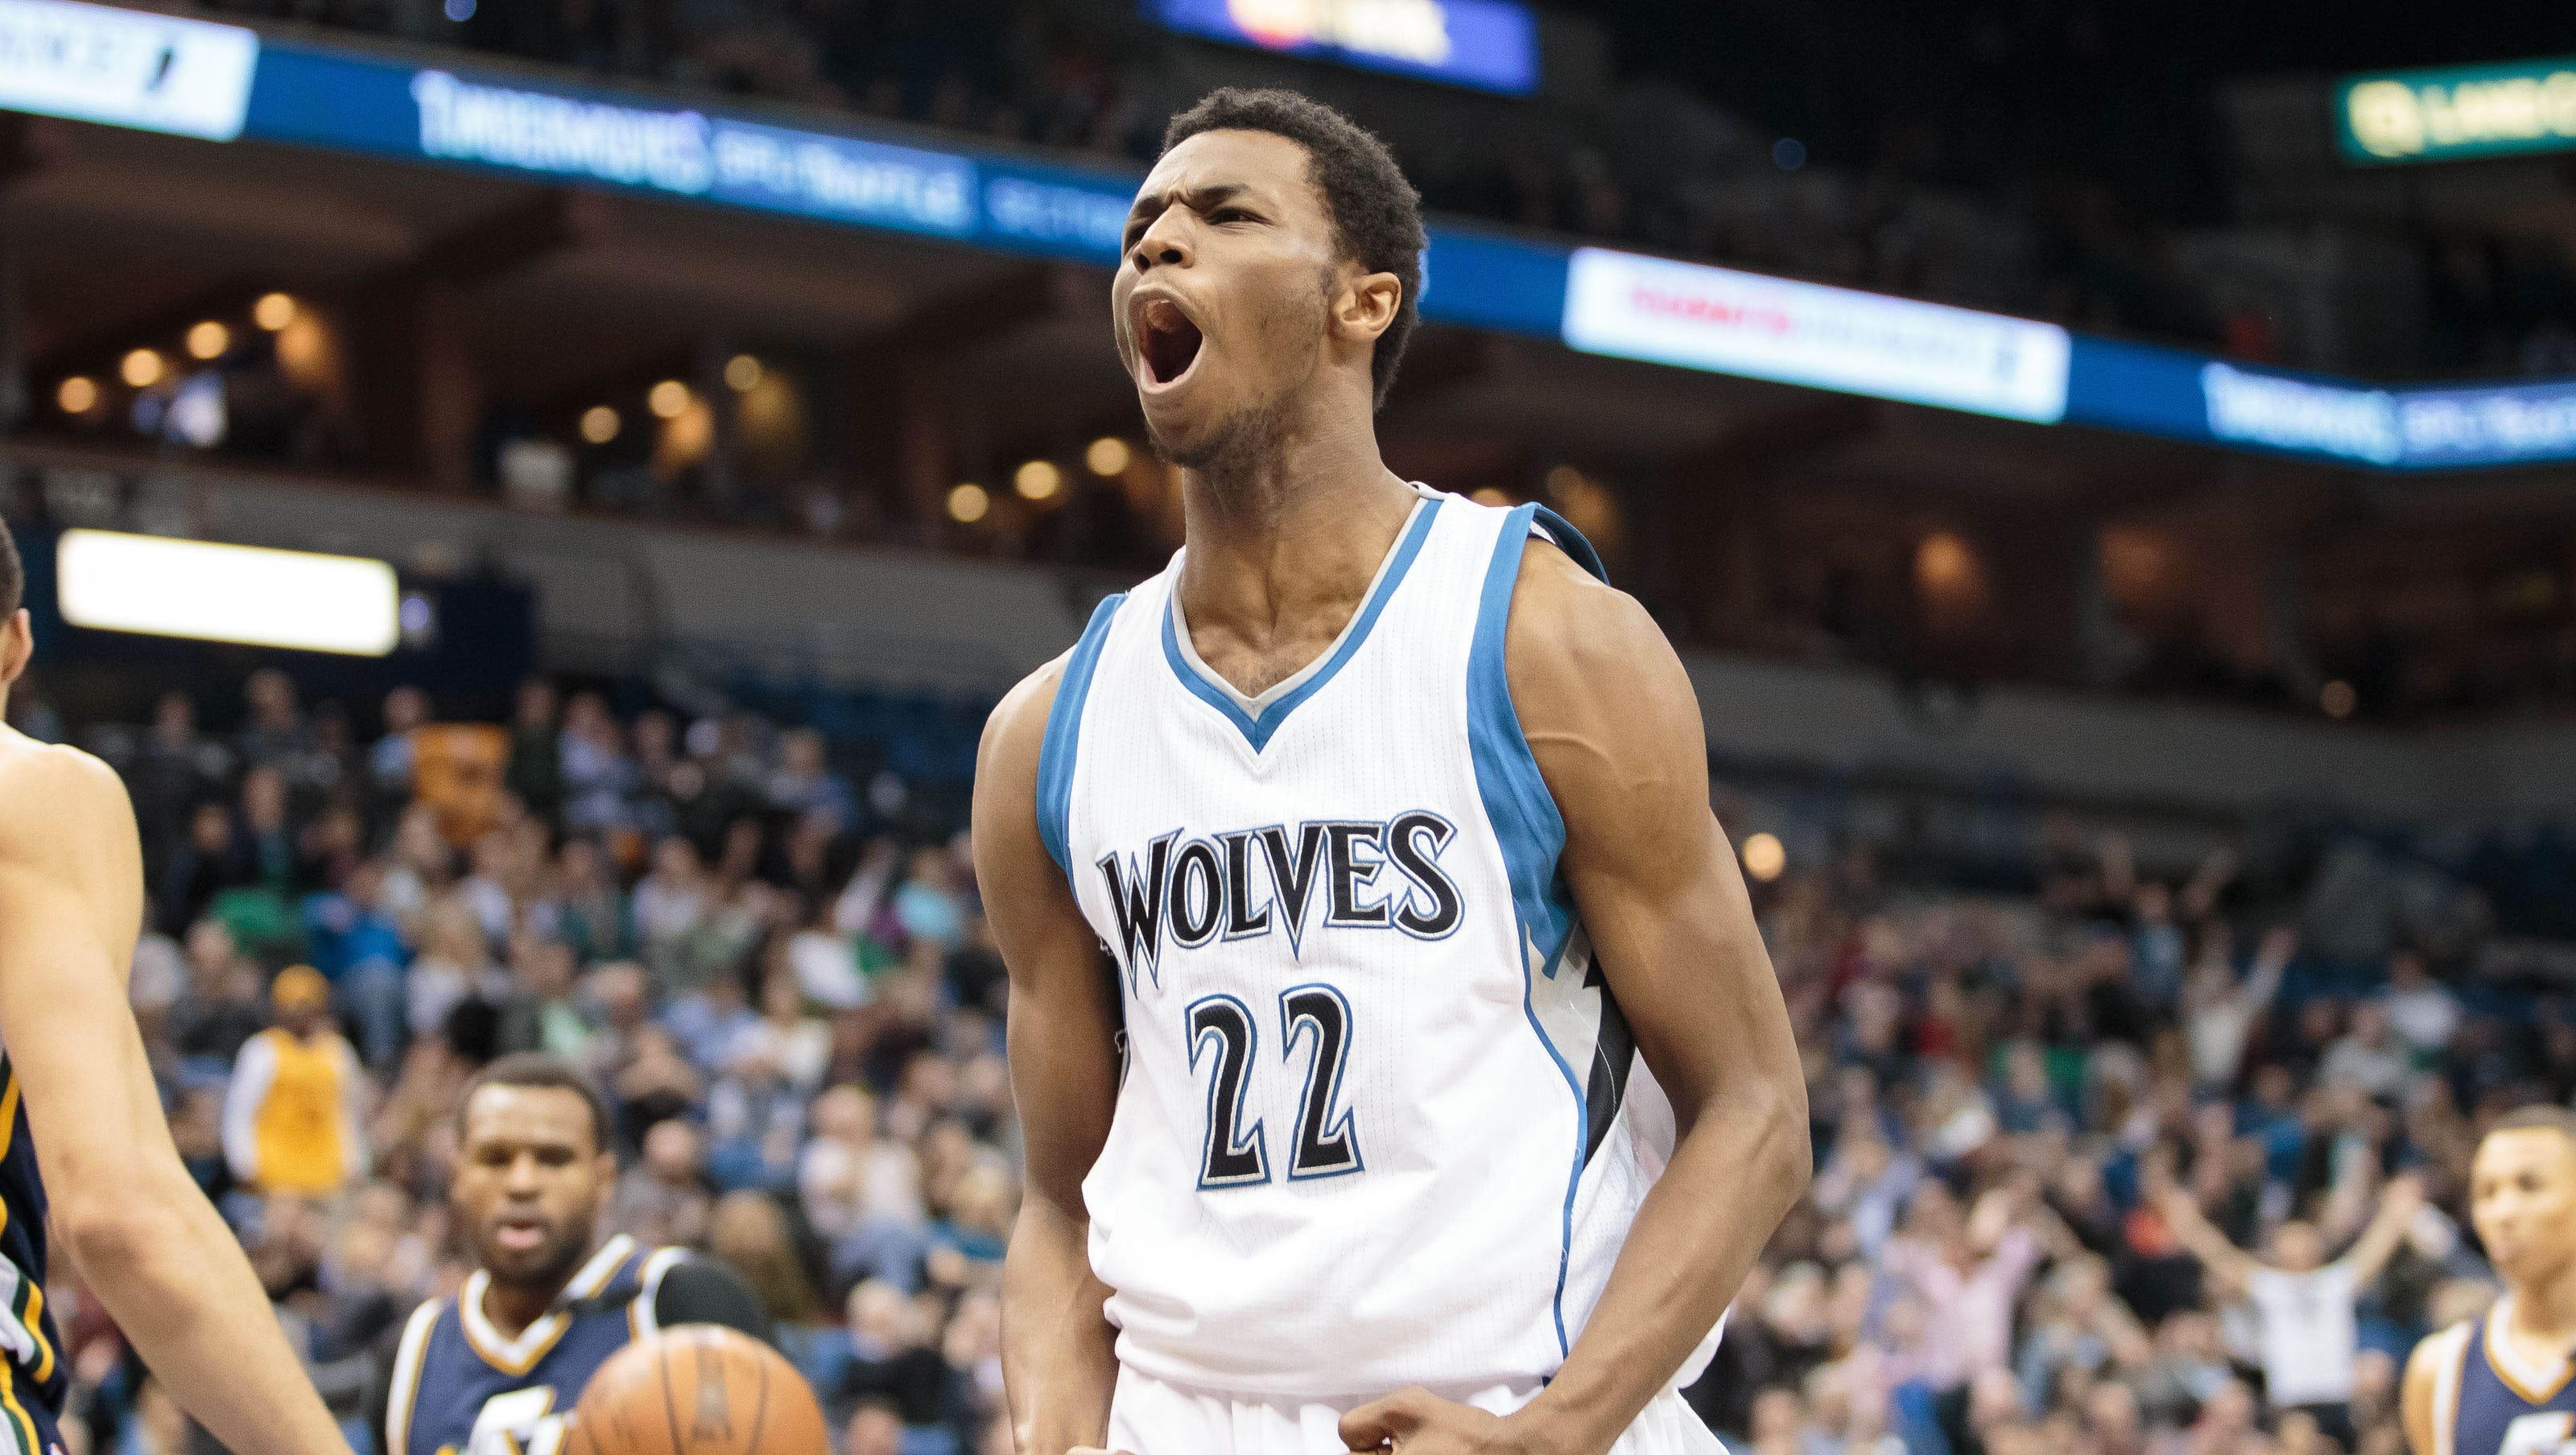 AP: Timberwolves' Andrew Wiggins named NBA rookie of the year